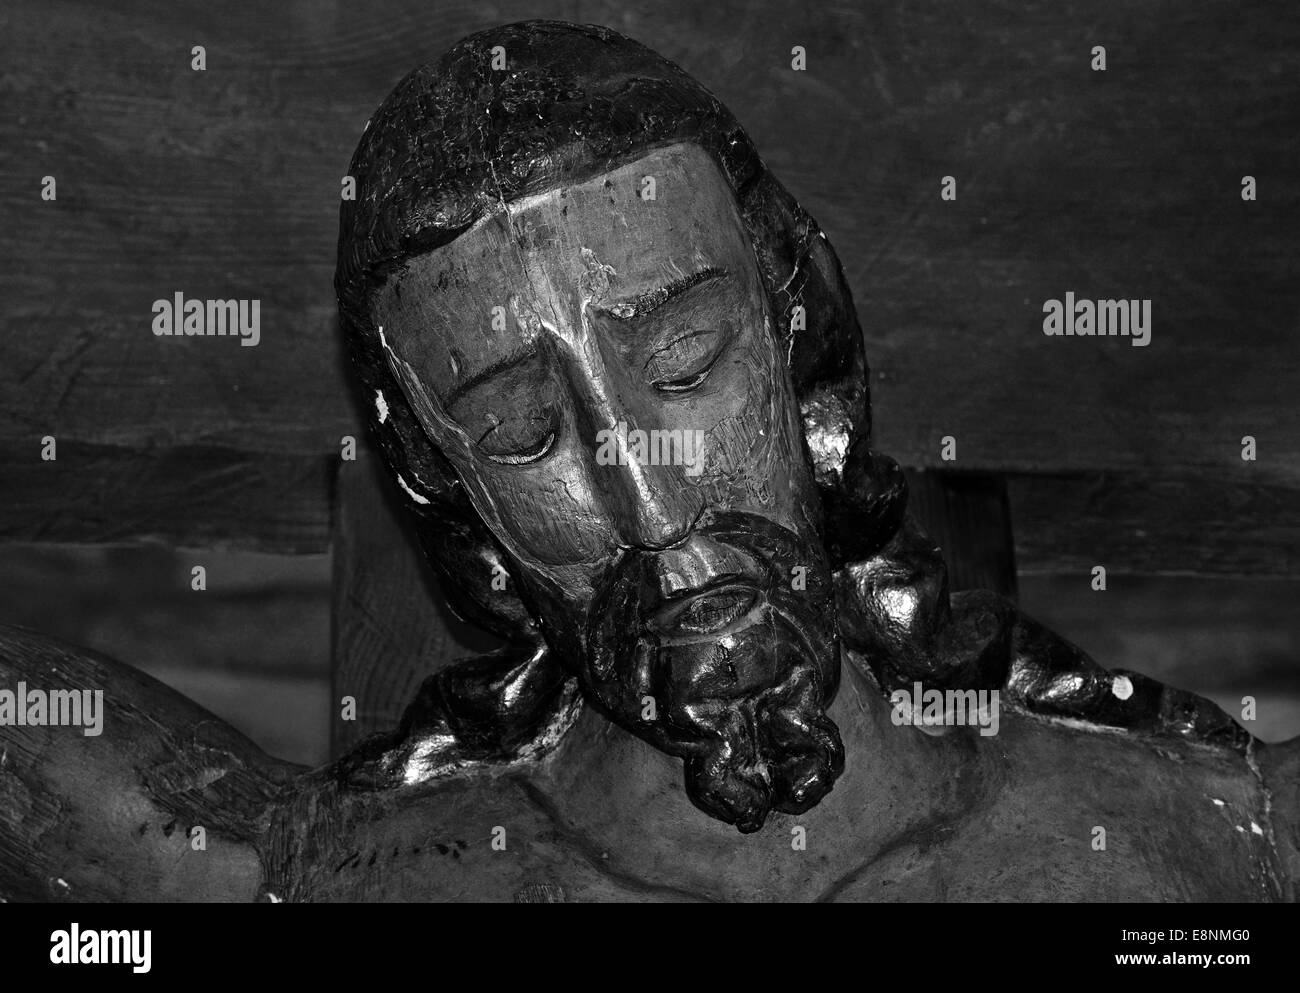 Spain, St. James Way: Face of crucified Christ in the romanesque church Santa Maria in O Cebreiro in black and white - Stock Image